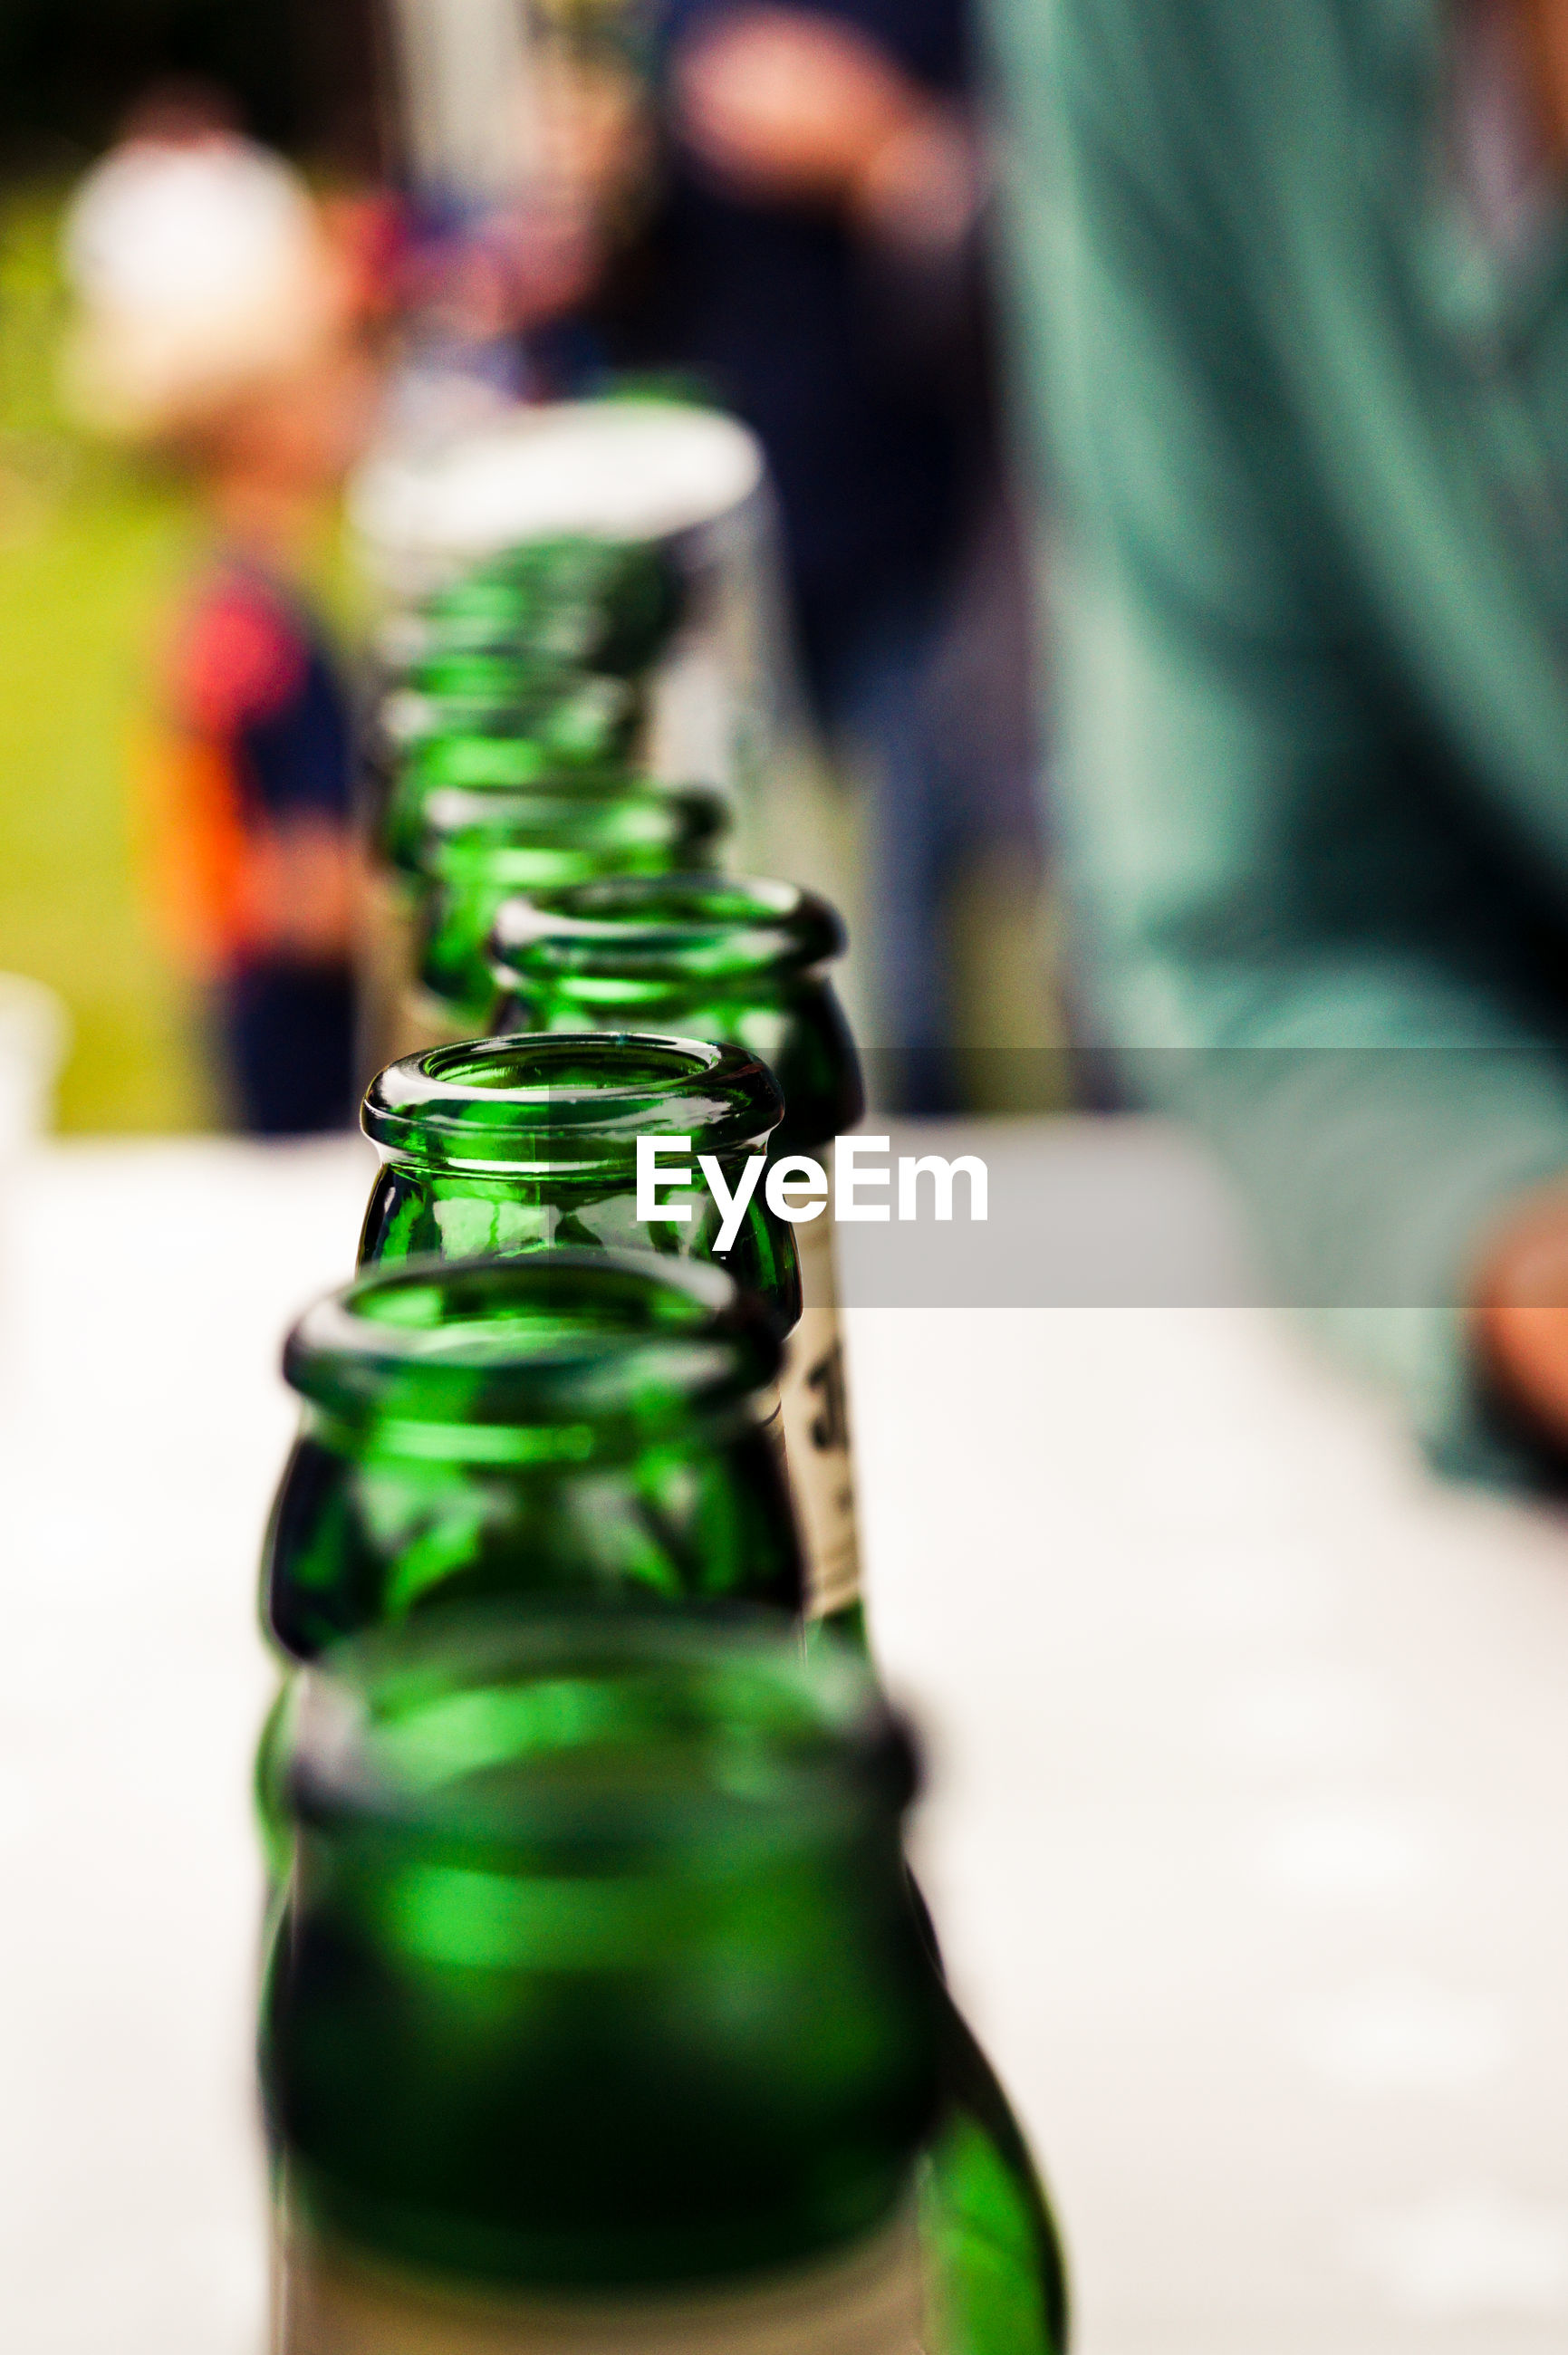 Close-up of beer bottles on table